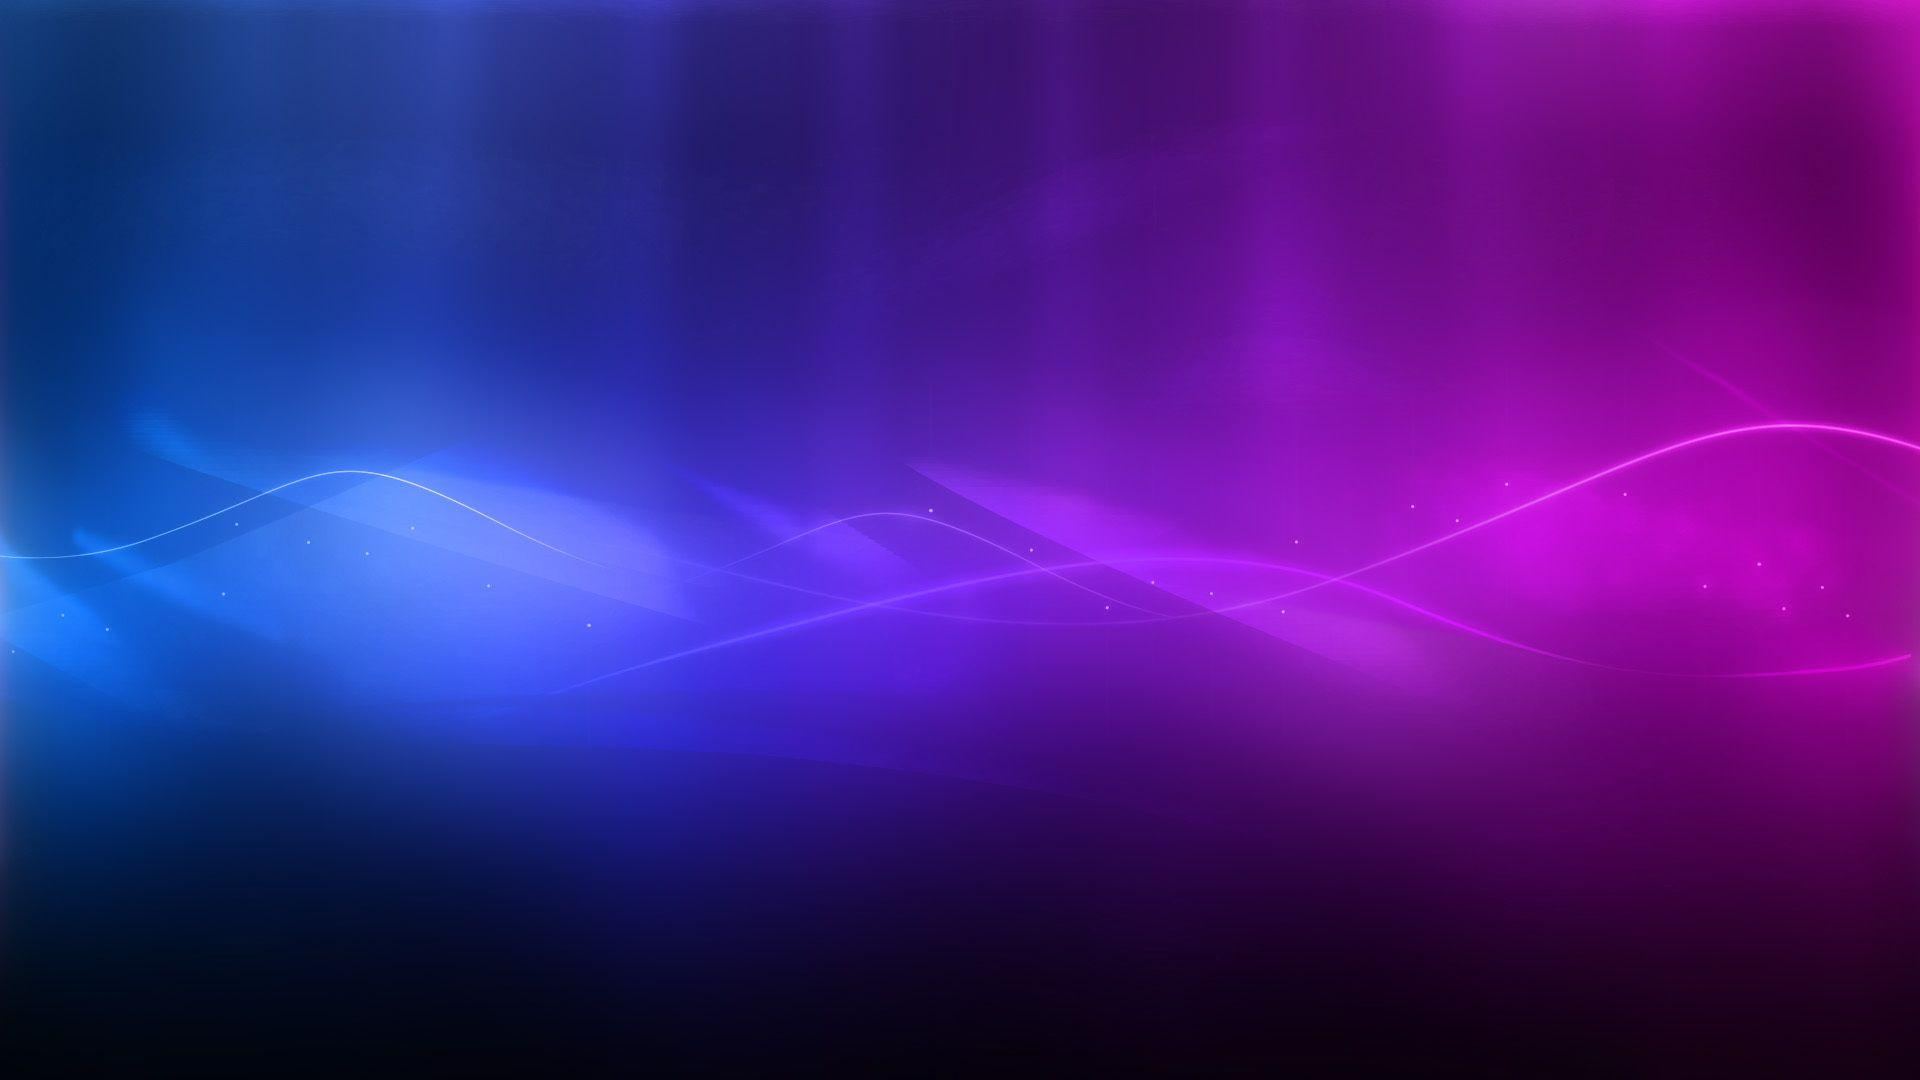 Blue purple wallpaper